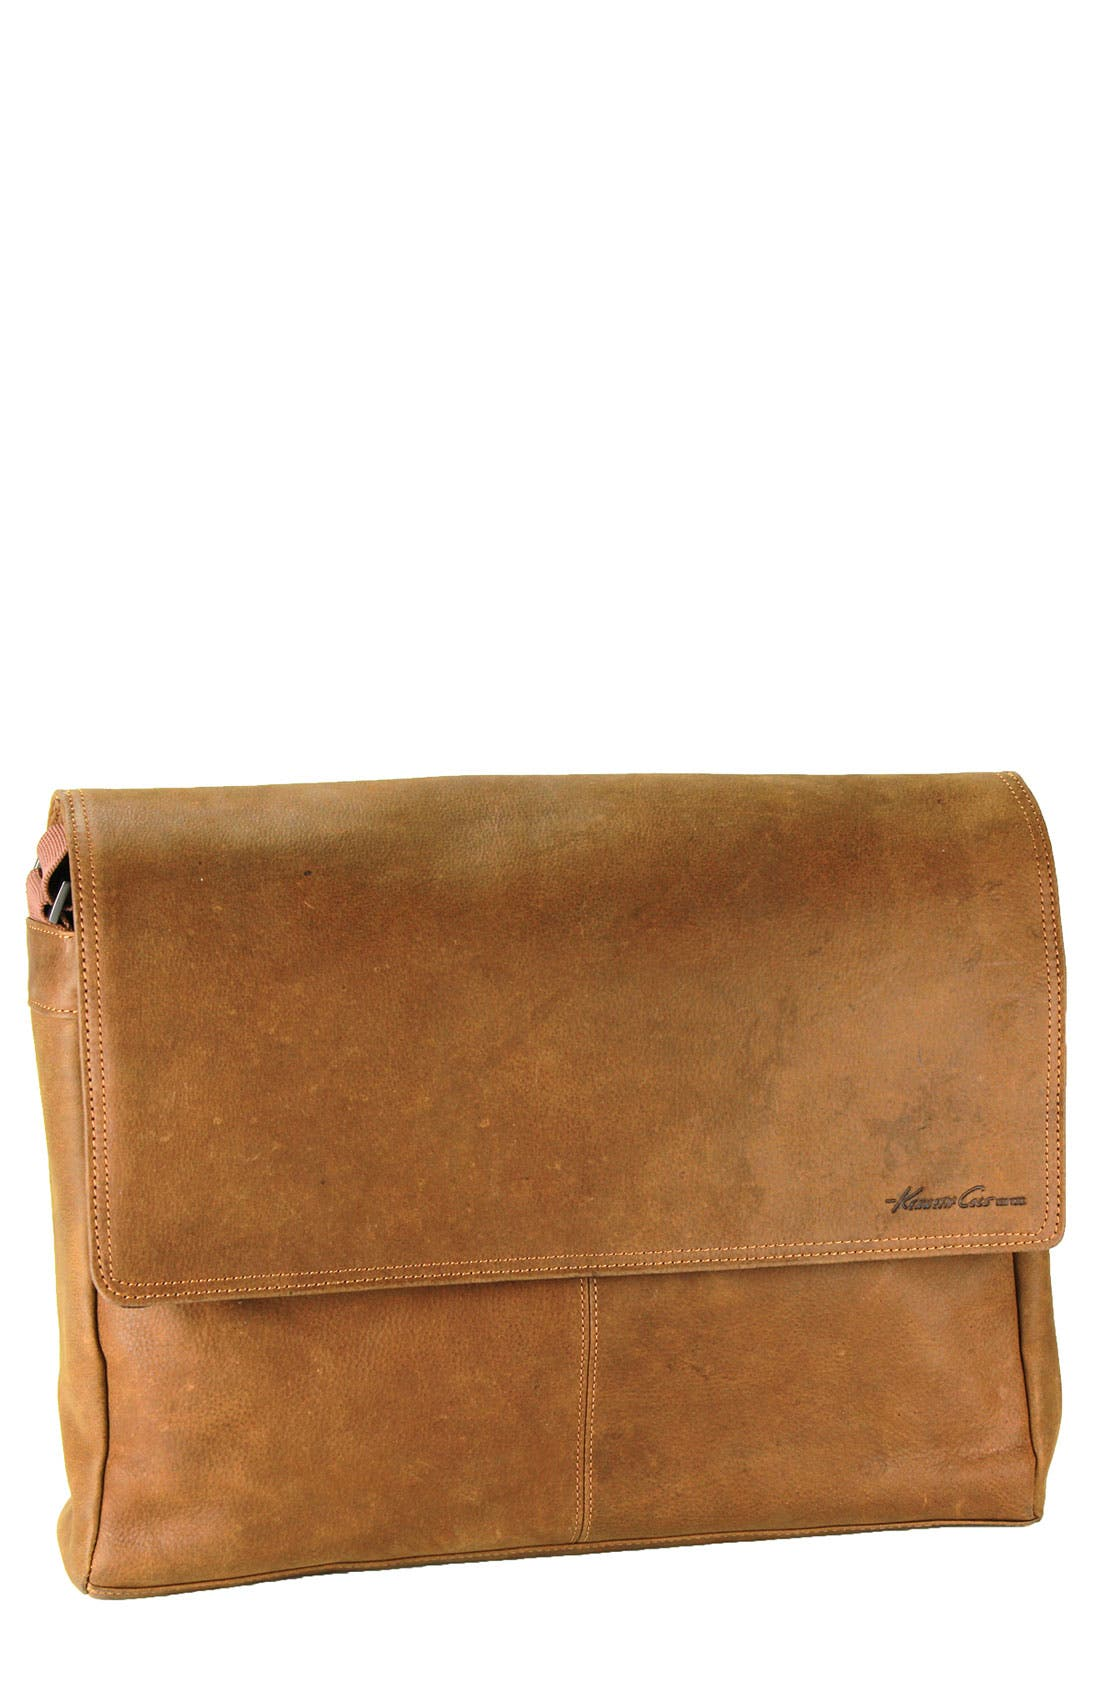 Main Image - Kenneth Cole New York 'Thunder' Leather Messenger Bag